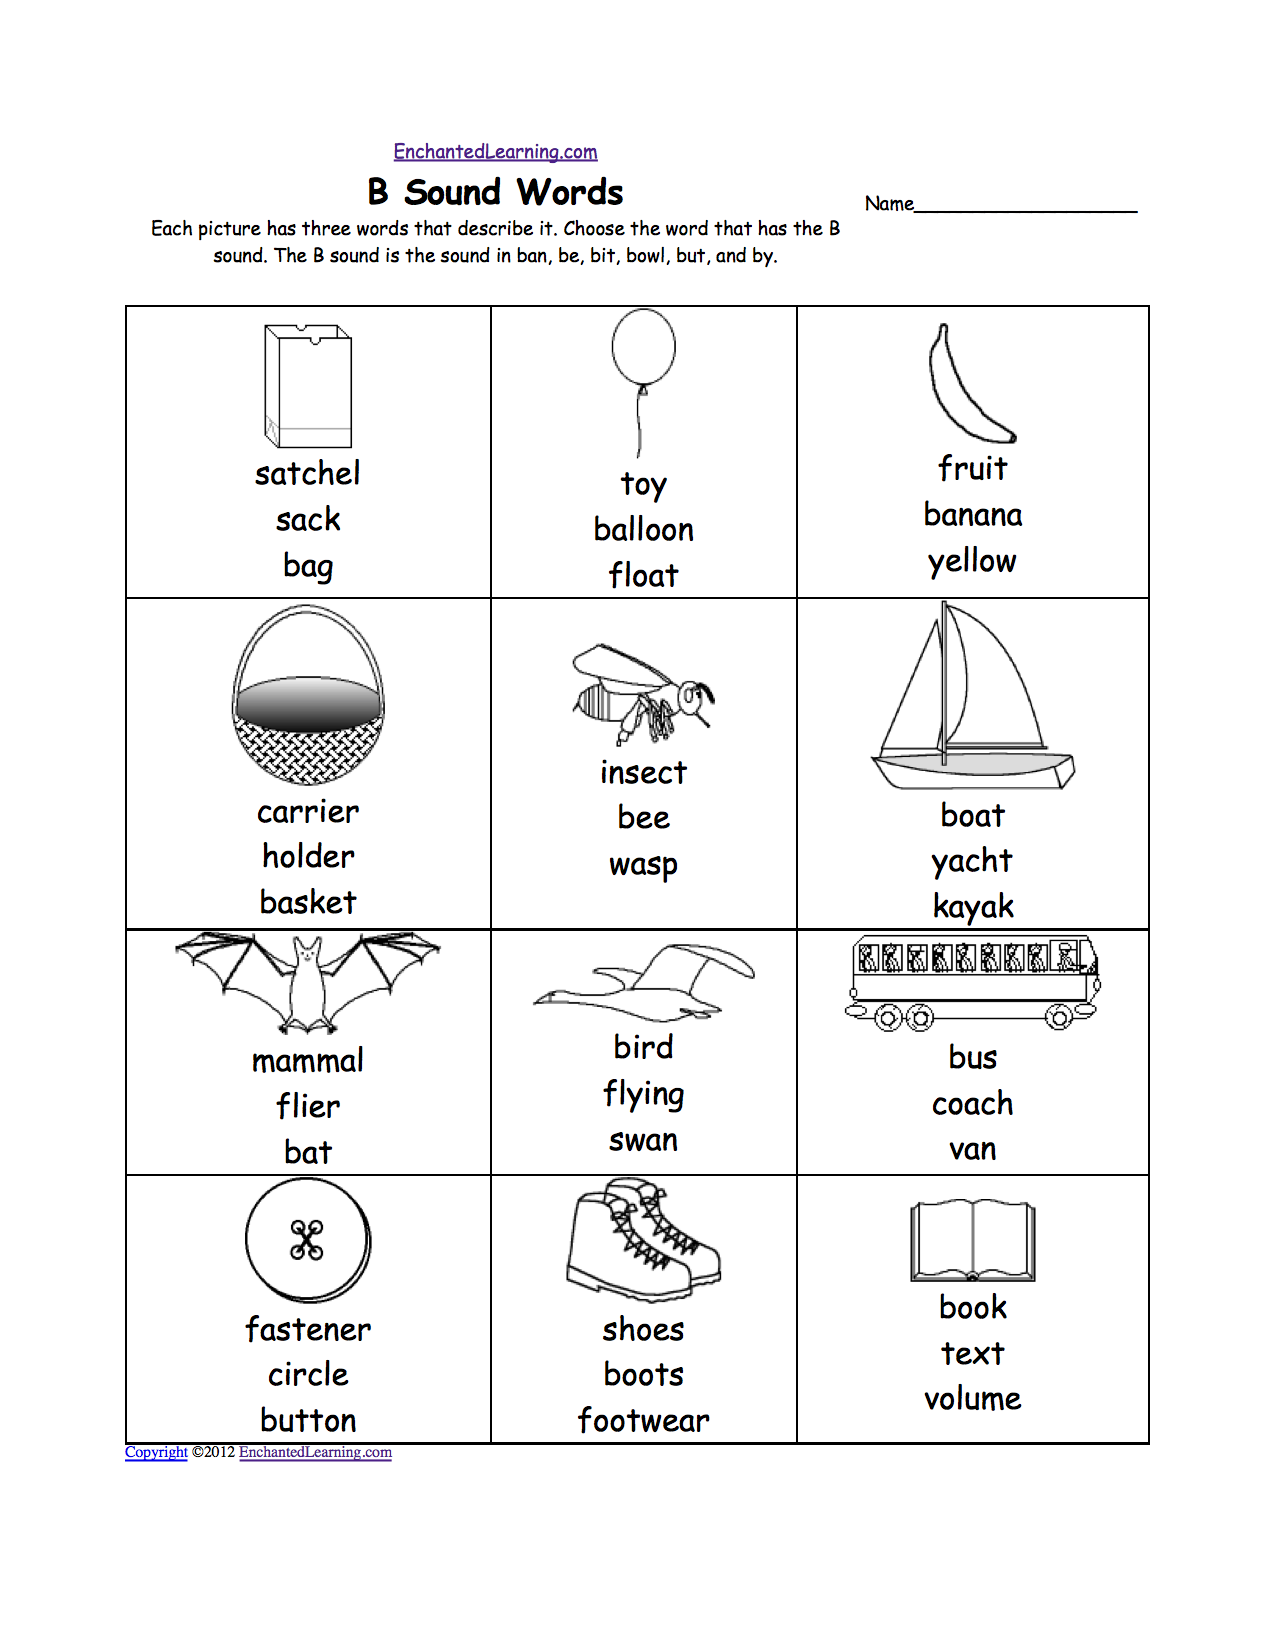 Aldiablosus  Marvellous Phonics Worksheets Multiple Choice Worksheets To Print  With Likable Quotbquot Sound Phonics Worksheet Multiple Choice Each Picture Has Three Words That Describe It Choose The Word That Has A Quotbquot Sound The Quotbquot Sound Is The Sound  With Cool Third Grade Reading Worksheets Free Also  Capital Loss Carryover Worksheet In Addition Beginner Division Worksheets And Adding Fractions On A Number Line Worksheet As Well As Fitness Worksheet Additionally Change Worksheets From Enchantedlearningcom With Aldiablosus  Likable Phonics Worksheets Multiple Choice Worksheets To Print  With Cool Quotbquot Sound Phonics Worksheet Multiple Choice Each Picture Has Three Words That Describe It Choose The Word That Has A Quotbquot Sound The Quotbquot Sound Is The Sound  And Marvellous Third Grade Reading Worksheets Free Also  Capital Loss Carryover Worksheet In Addition Beginner Division Worksheets From Enchantedlearningcom